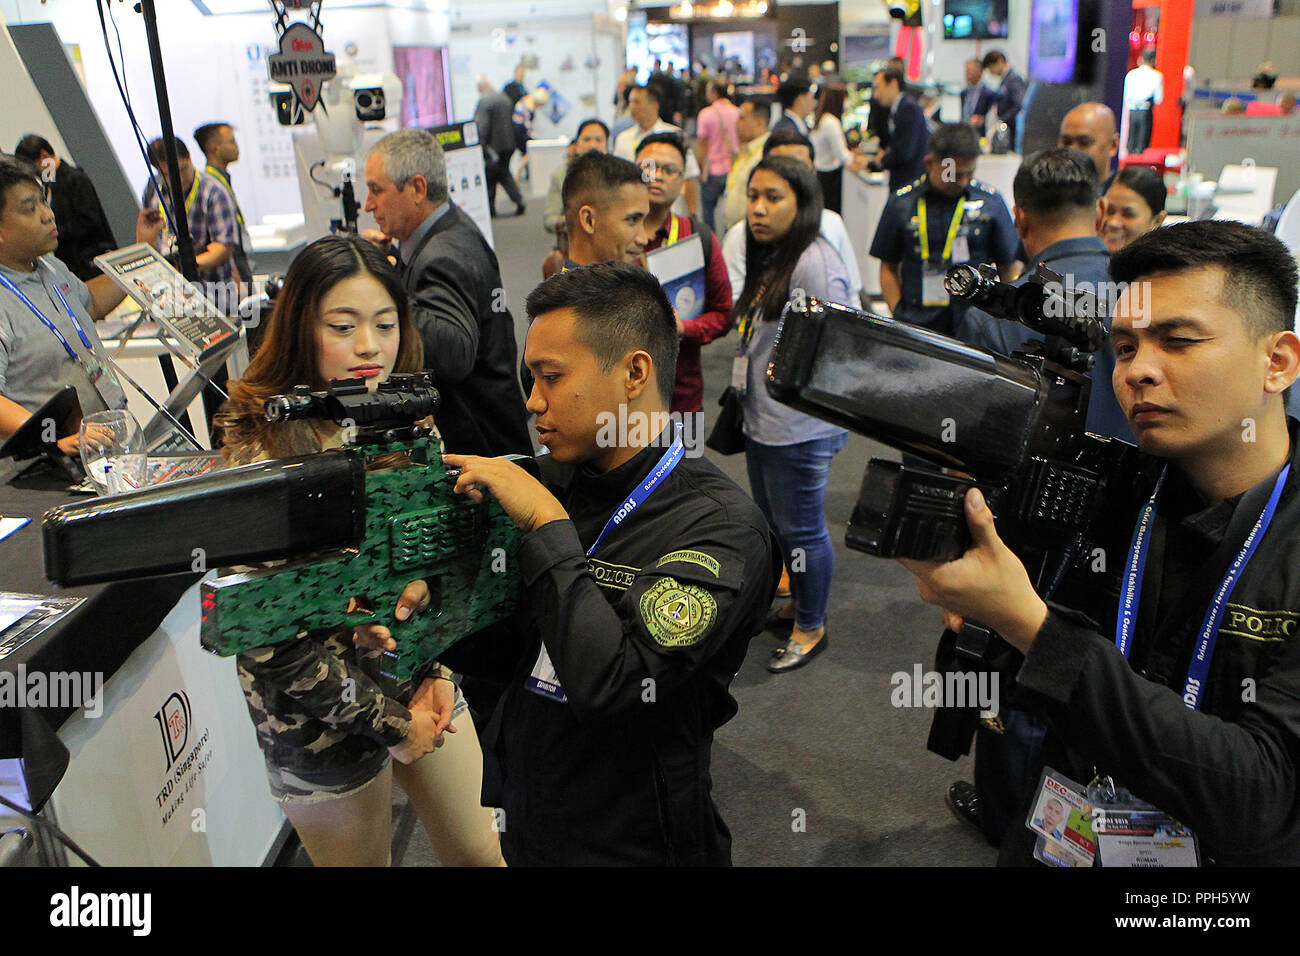 Pasay City, Philippines. 26th Sep, 2018. Filipino policemen try 'drone-slayer' rifles showcased in the 2018 Asian Defense, Security and Crisis Management (2018 ADAS) exhibition and conference in Pasay City, the Philippines, Sept. 26, 2018. The 2018 ADAS features conferences and exhibitions on the technologies on defense, homeland security and disaster relief. Credit: Rouelle Umali/Xinhua/Alamy Live News - Stock Image